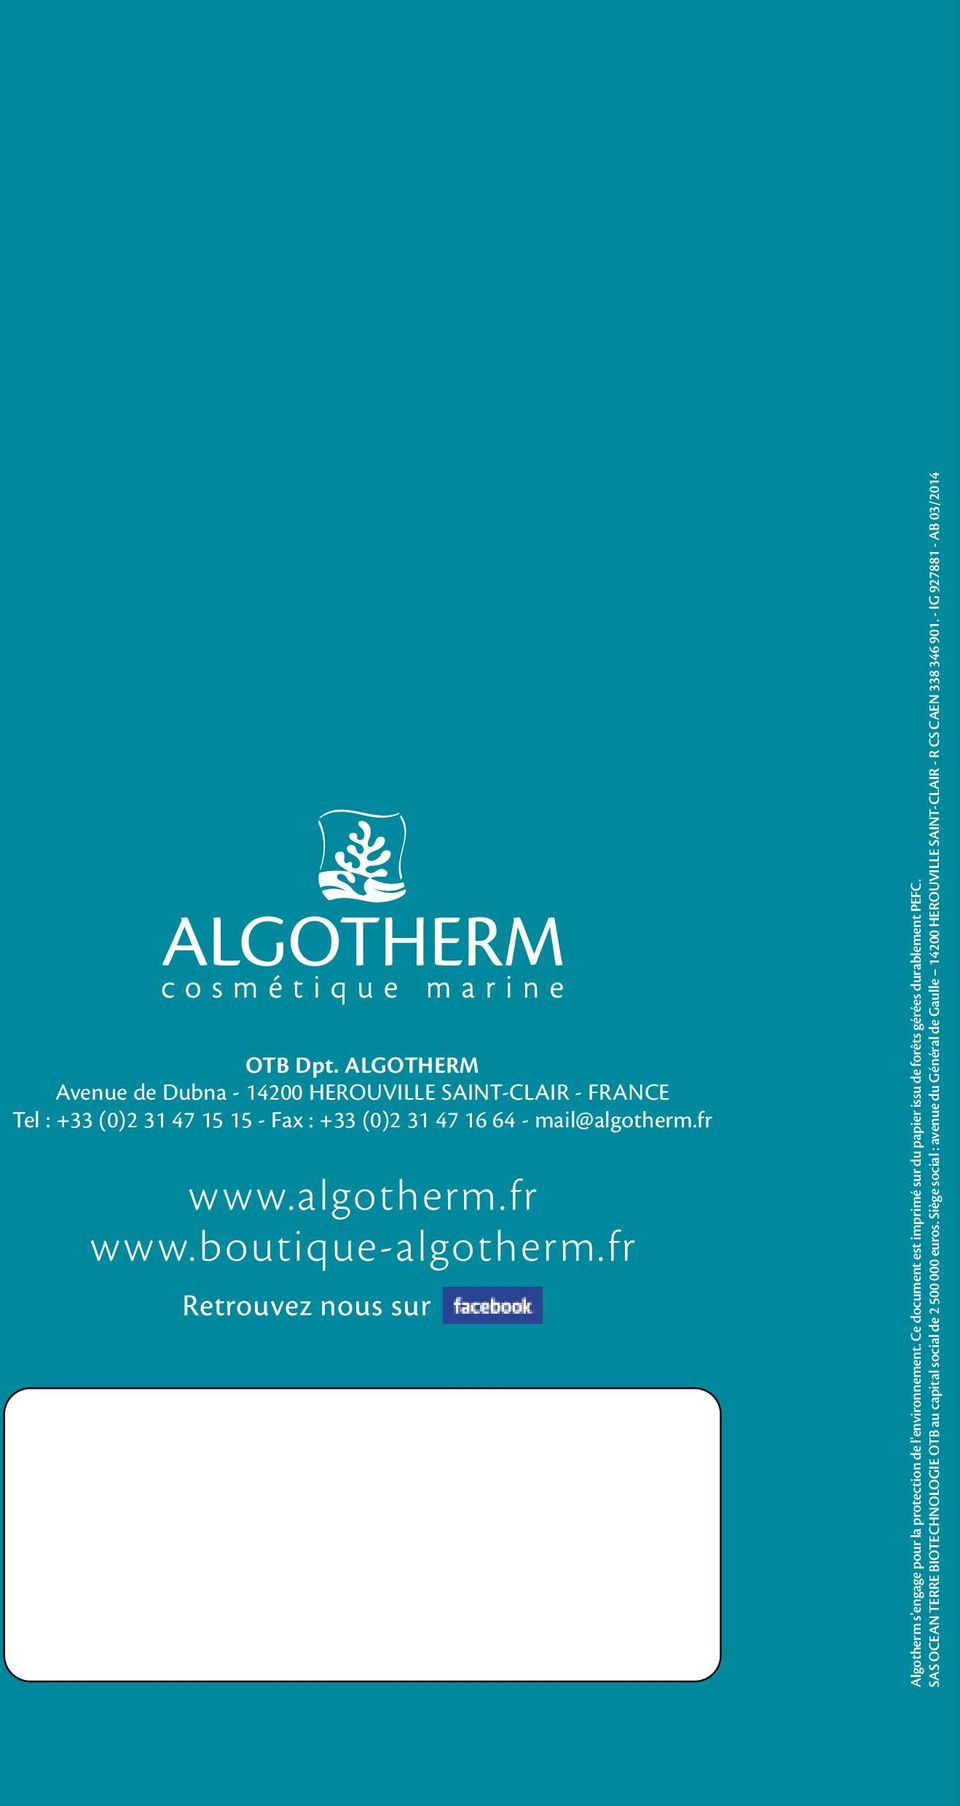 mail@algotherm.fr www.algotherm.fr www.boutique-algotherm.